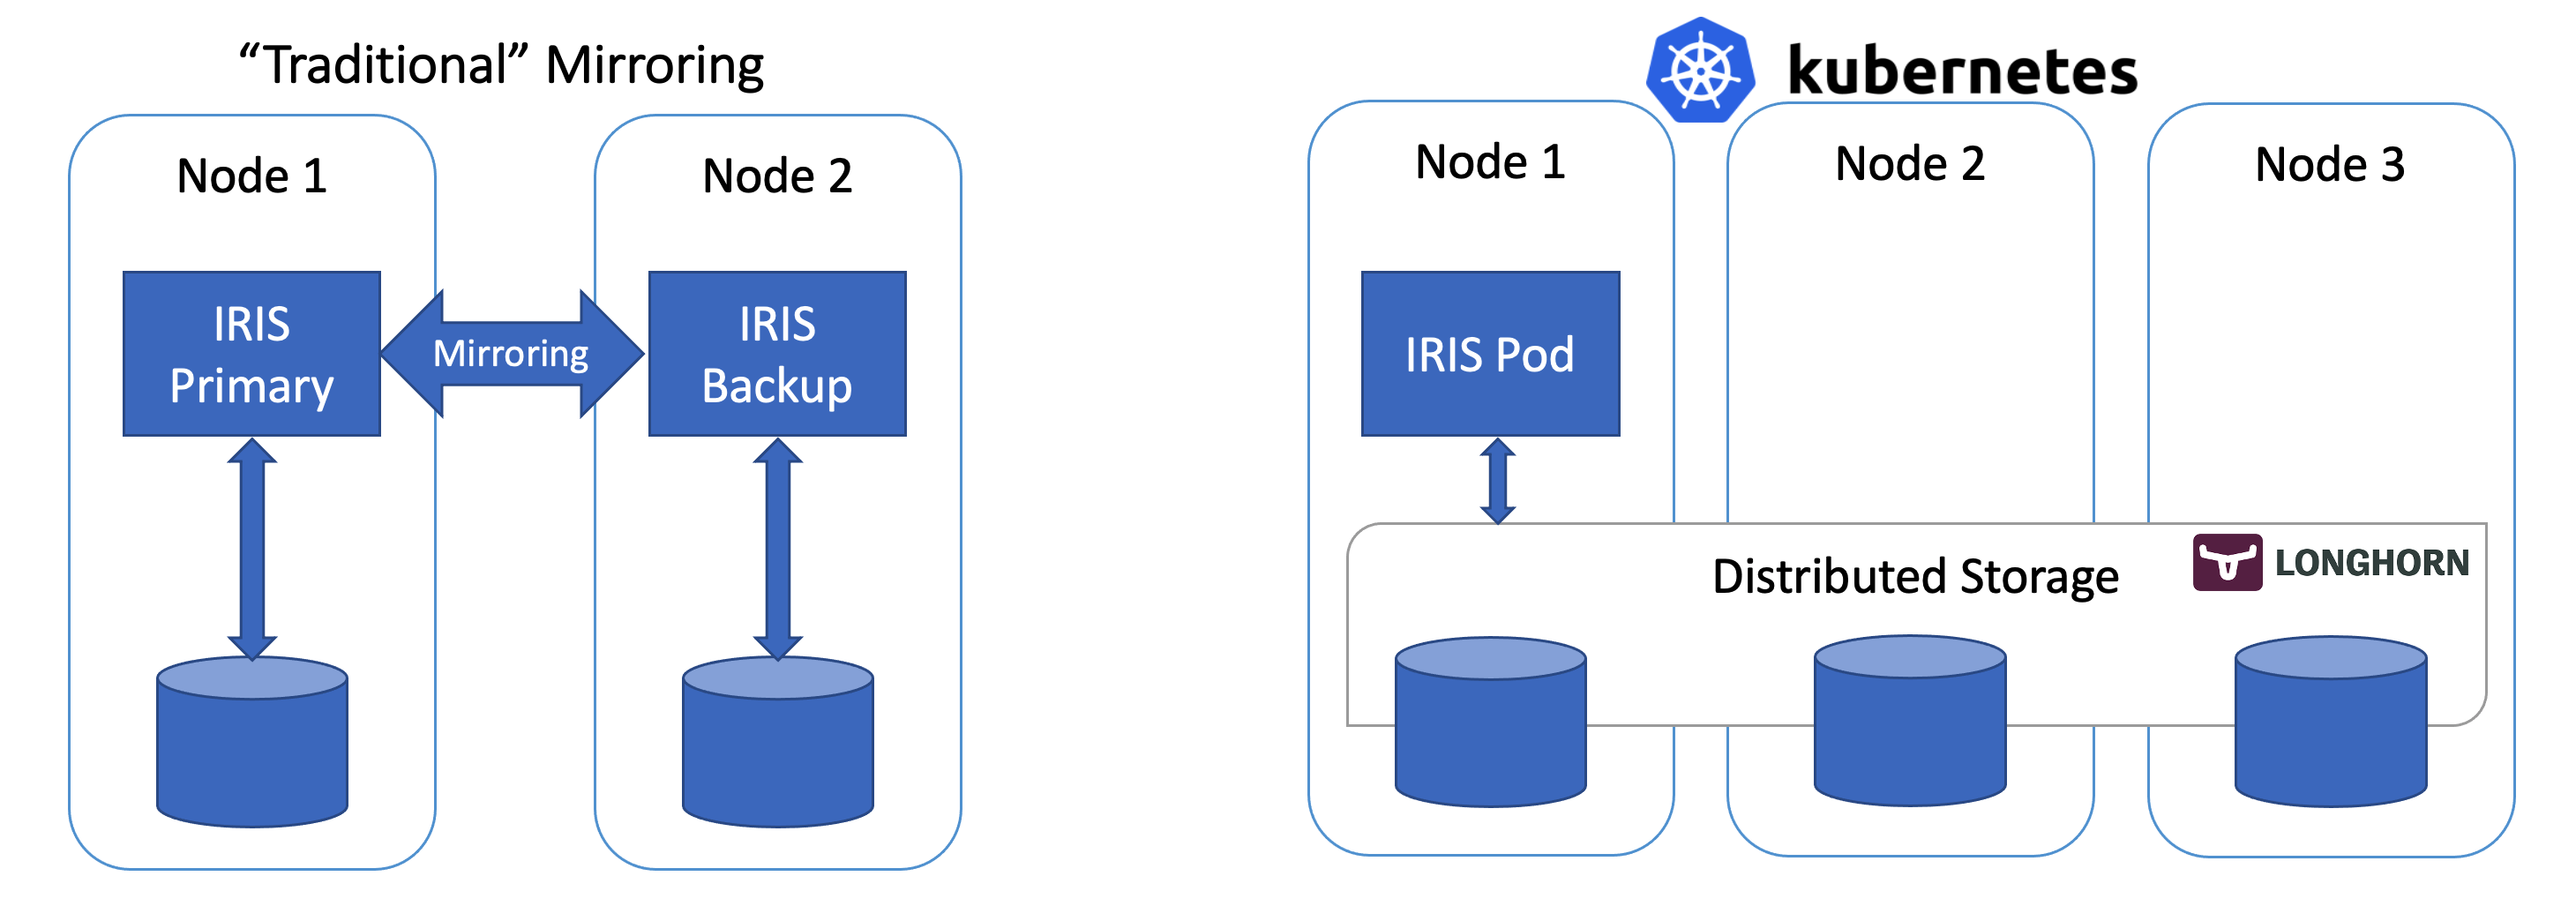 Mirroring vs. K8s distributes storage